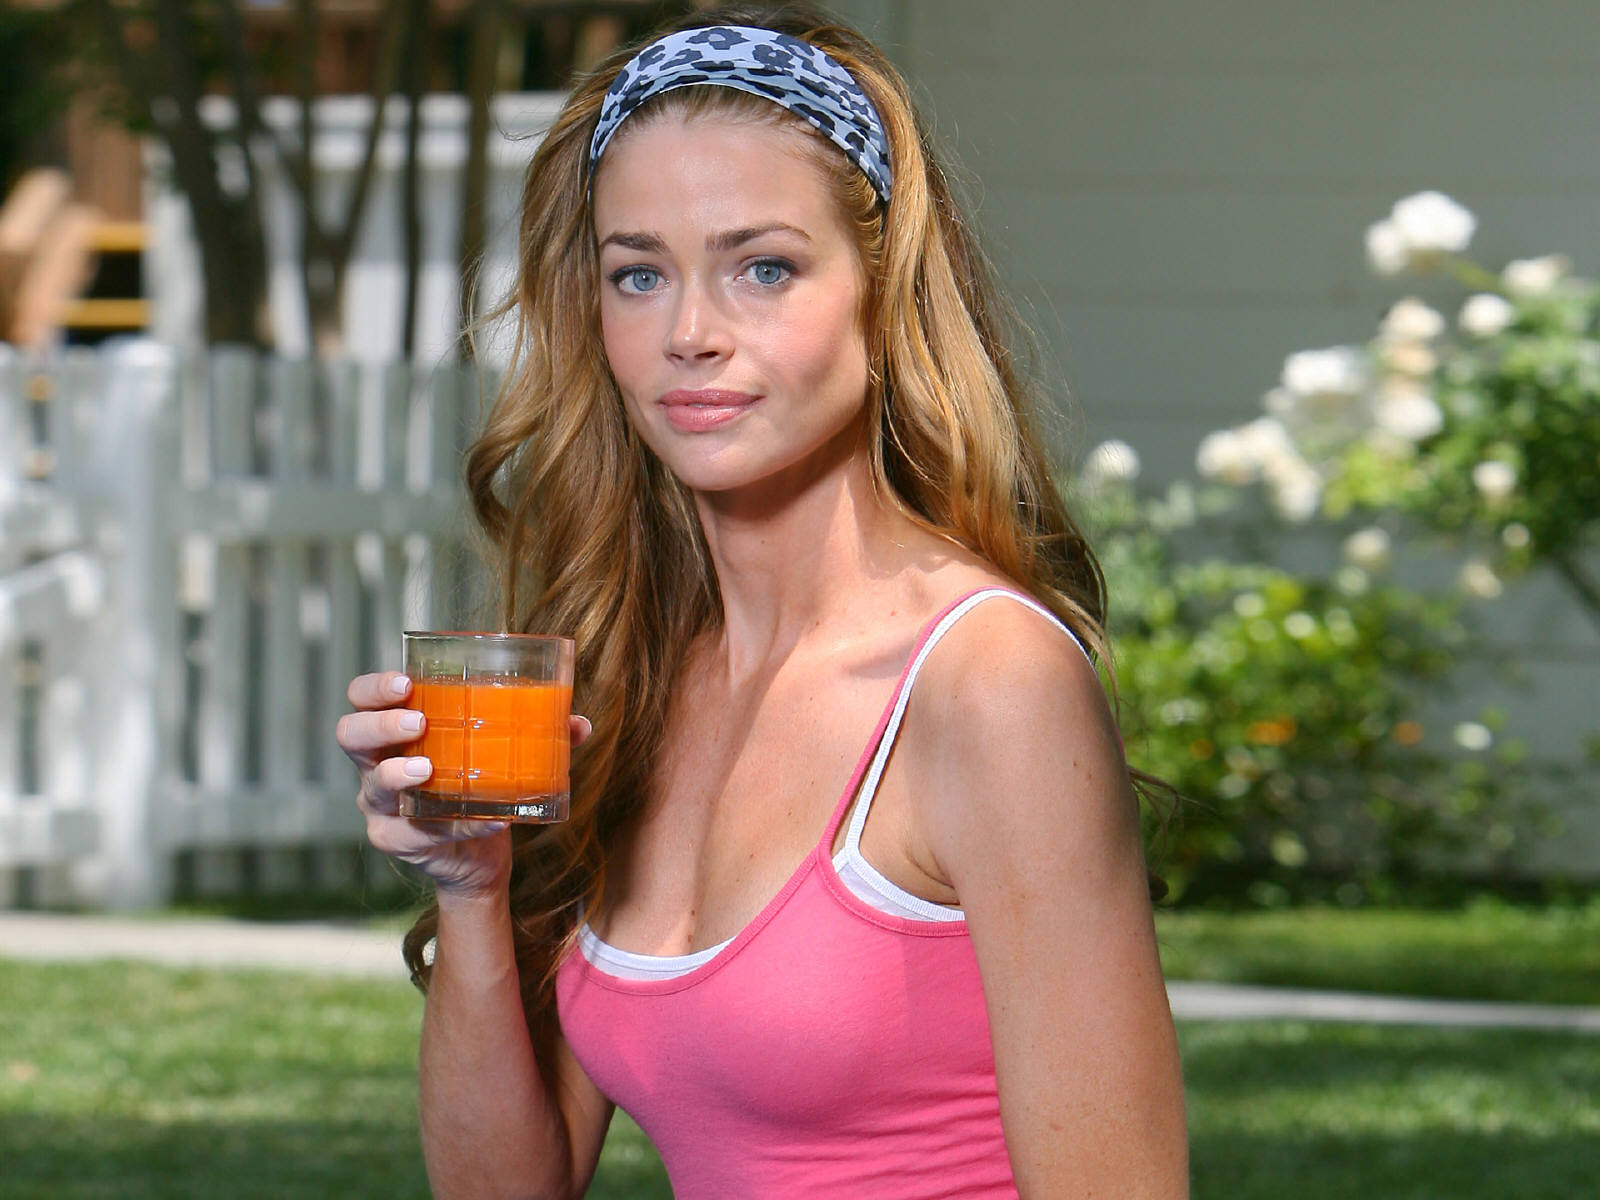 Cleavage Denise Richards nude photos 2019